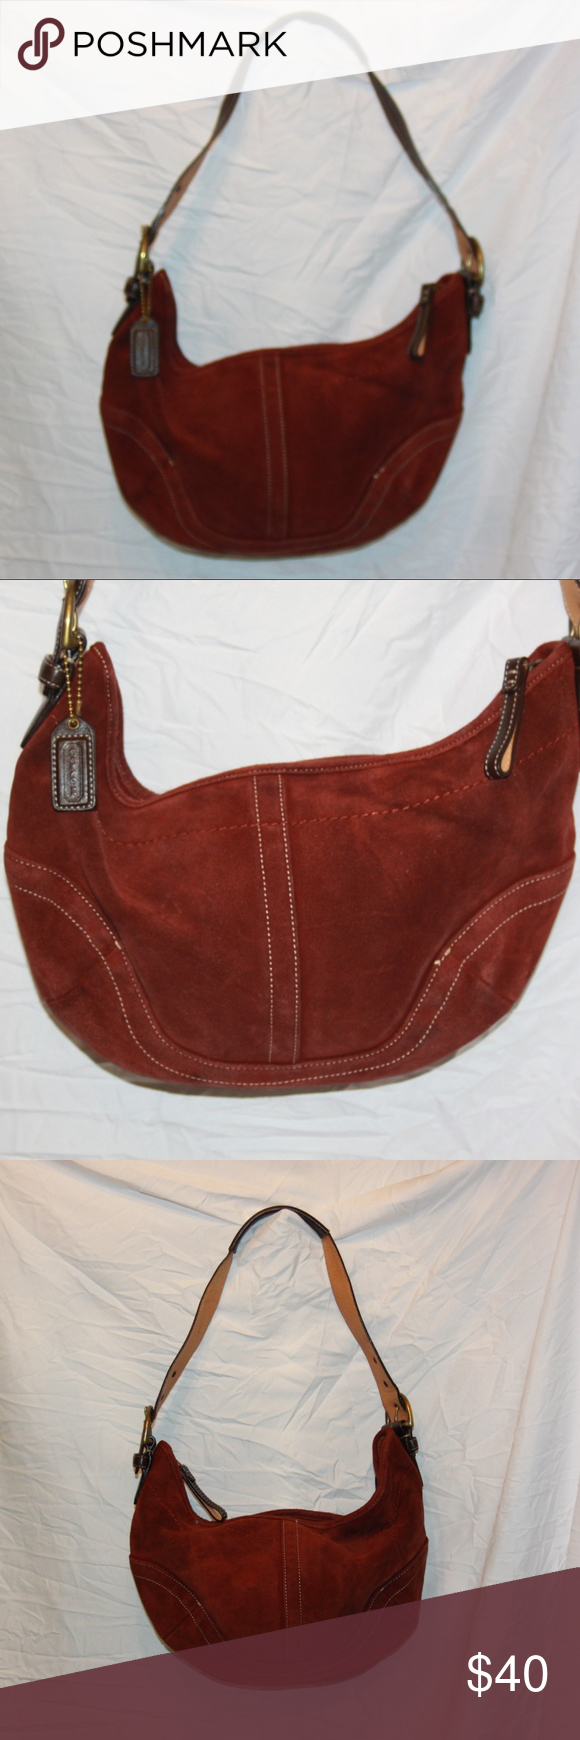 COACH 4286 Red Burgundy Maroon Soft Suede Leather COACH 4286 Red Burgundy  Maroon Soft Suede Leather f05f44a02e